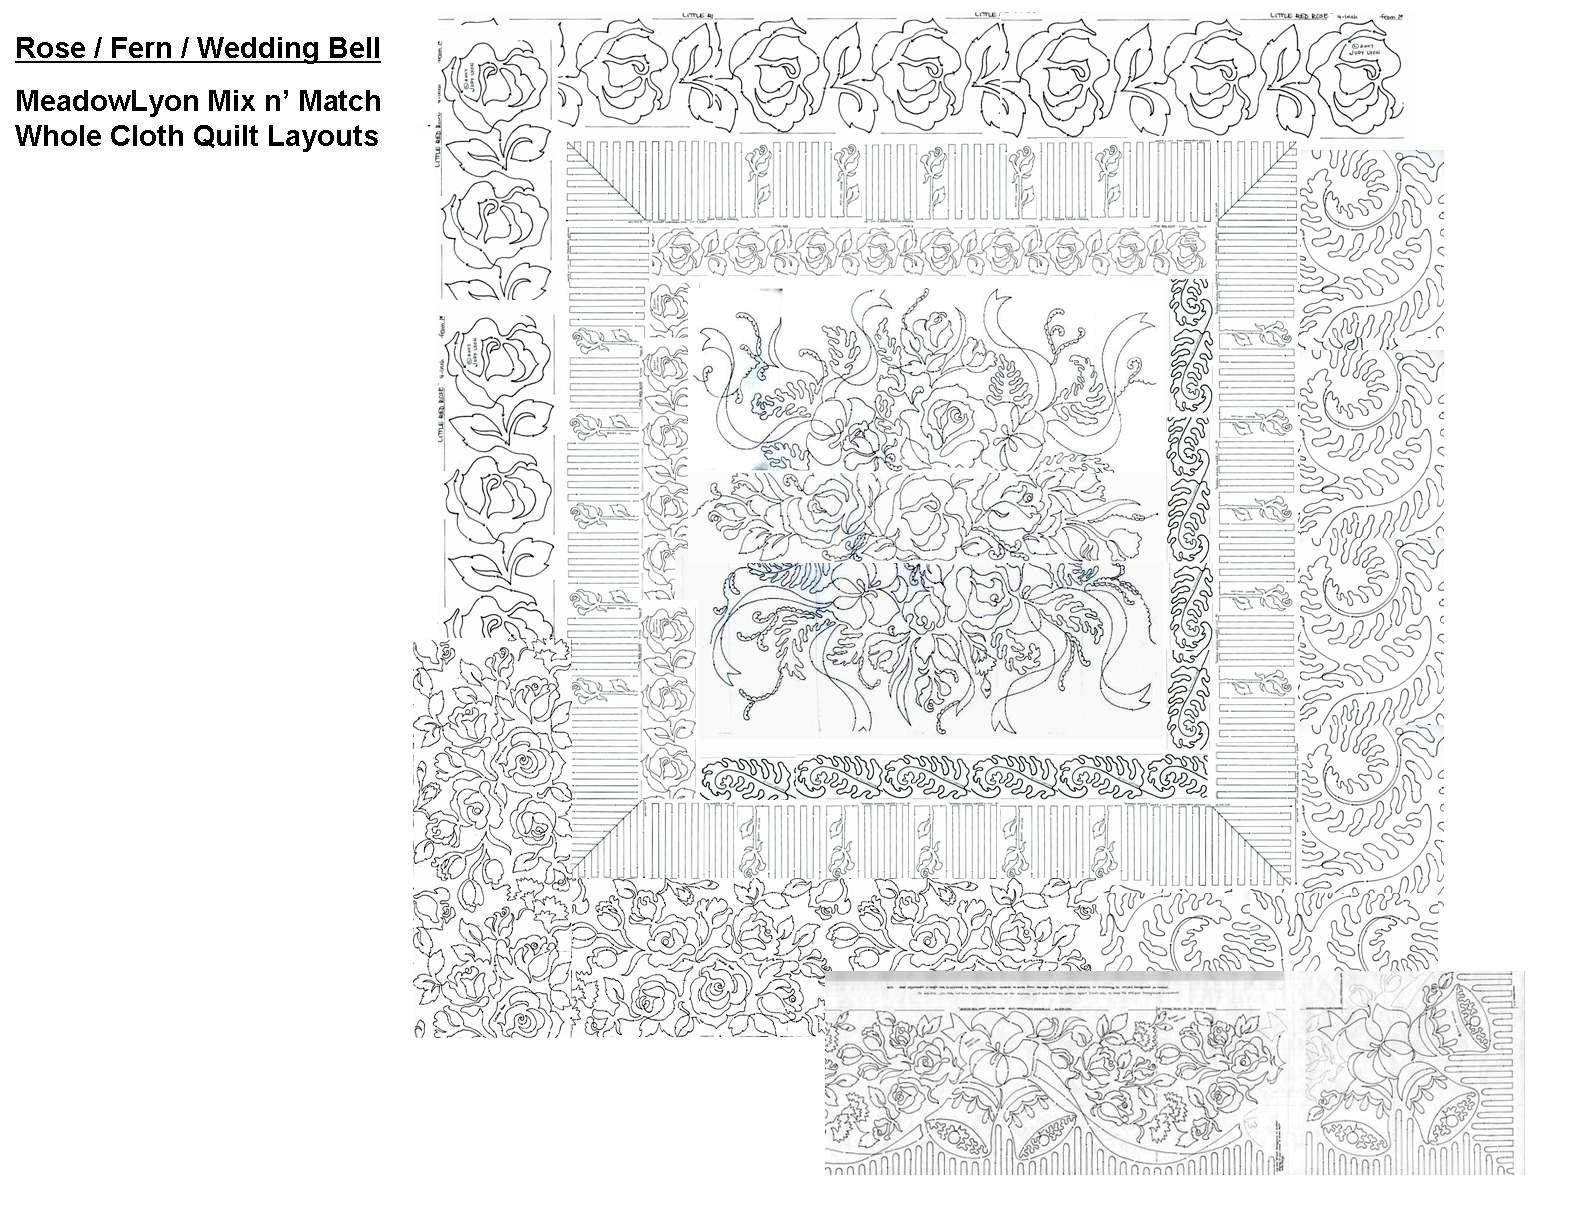 rose whole cloth layout ideas